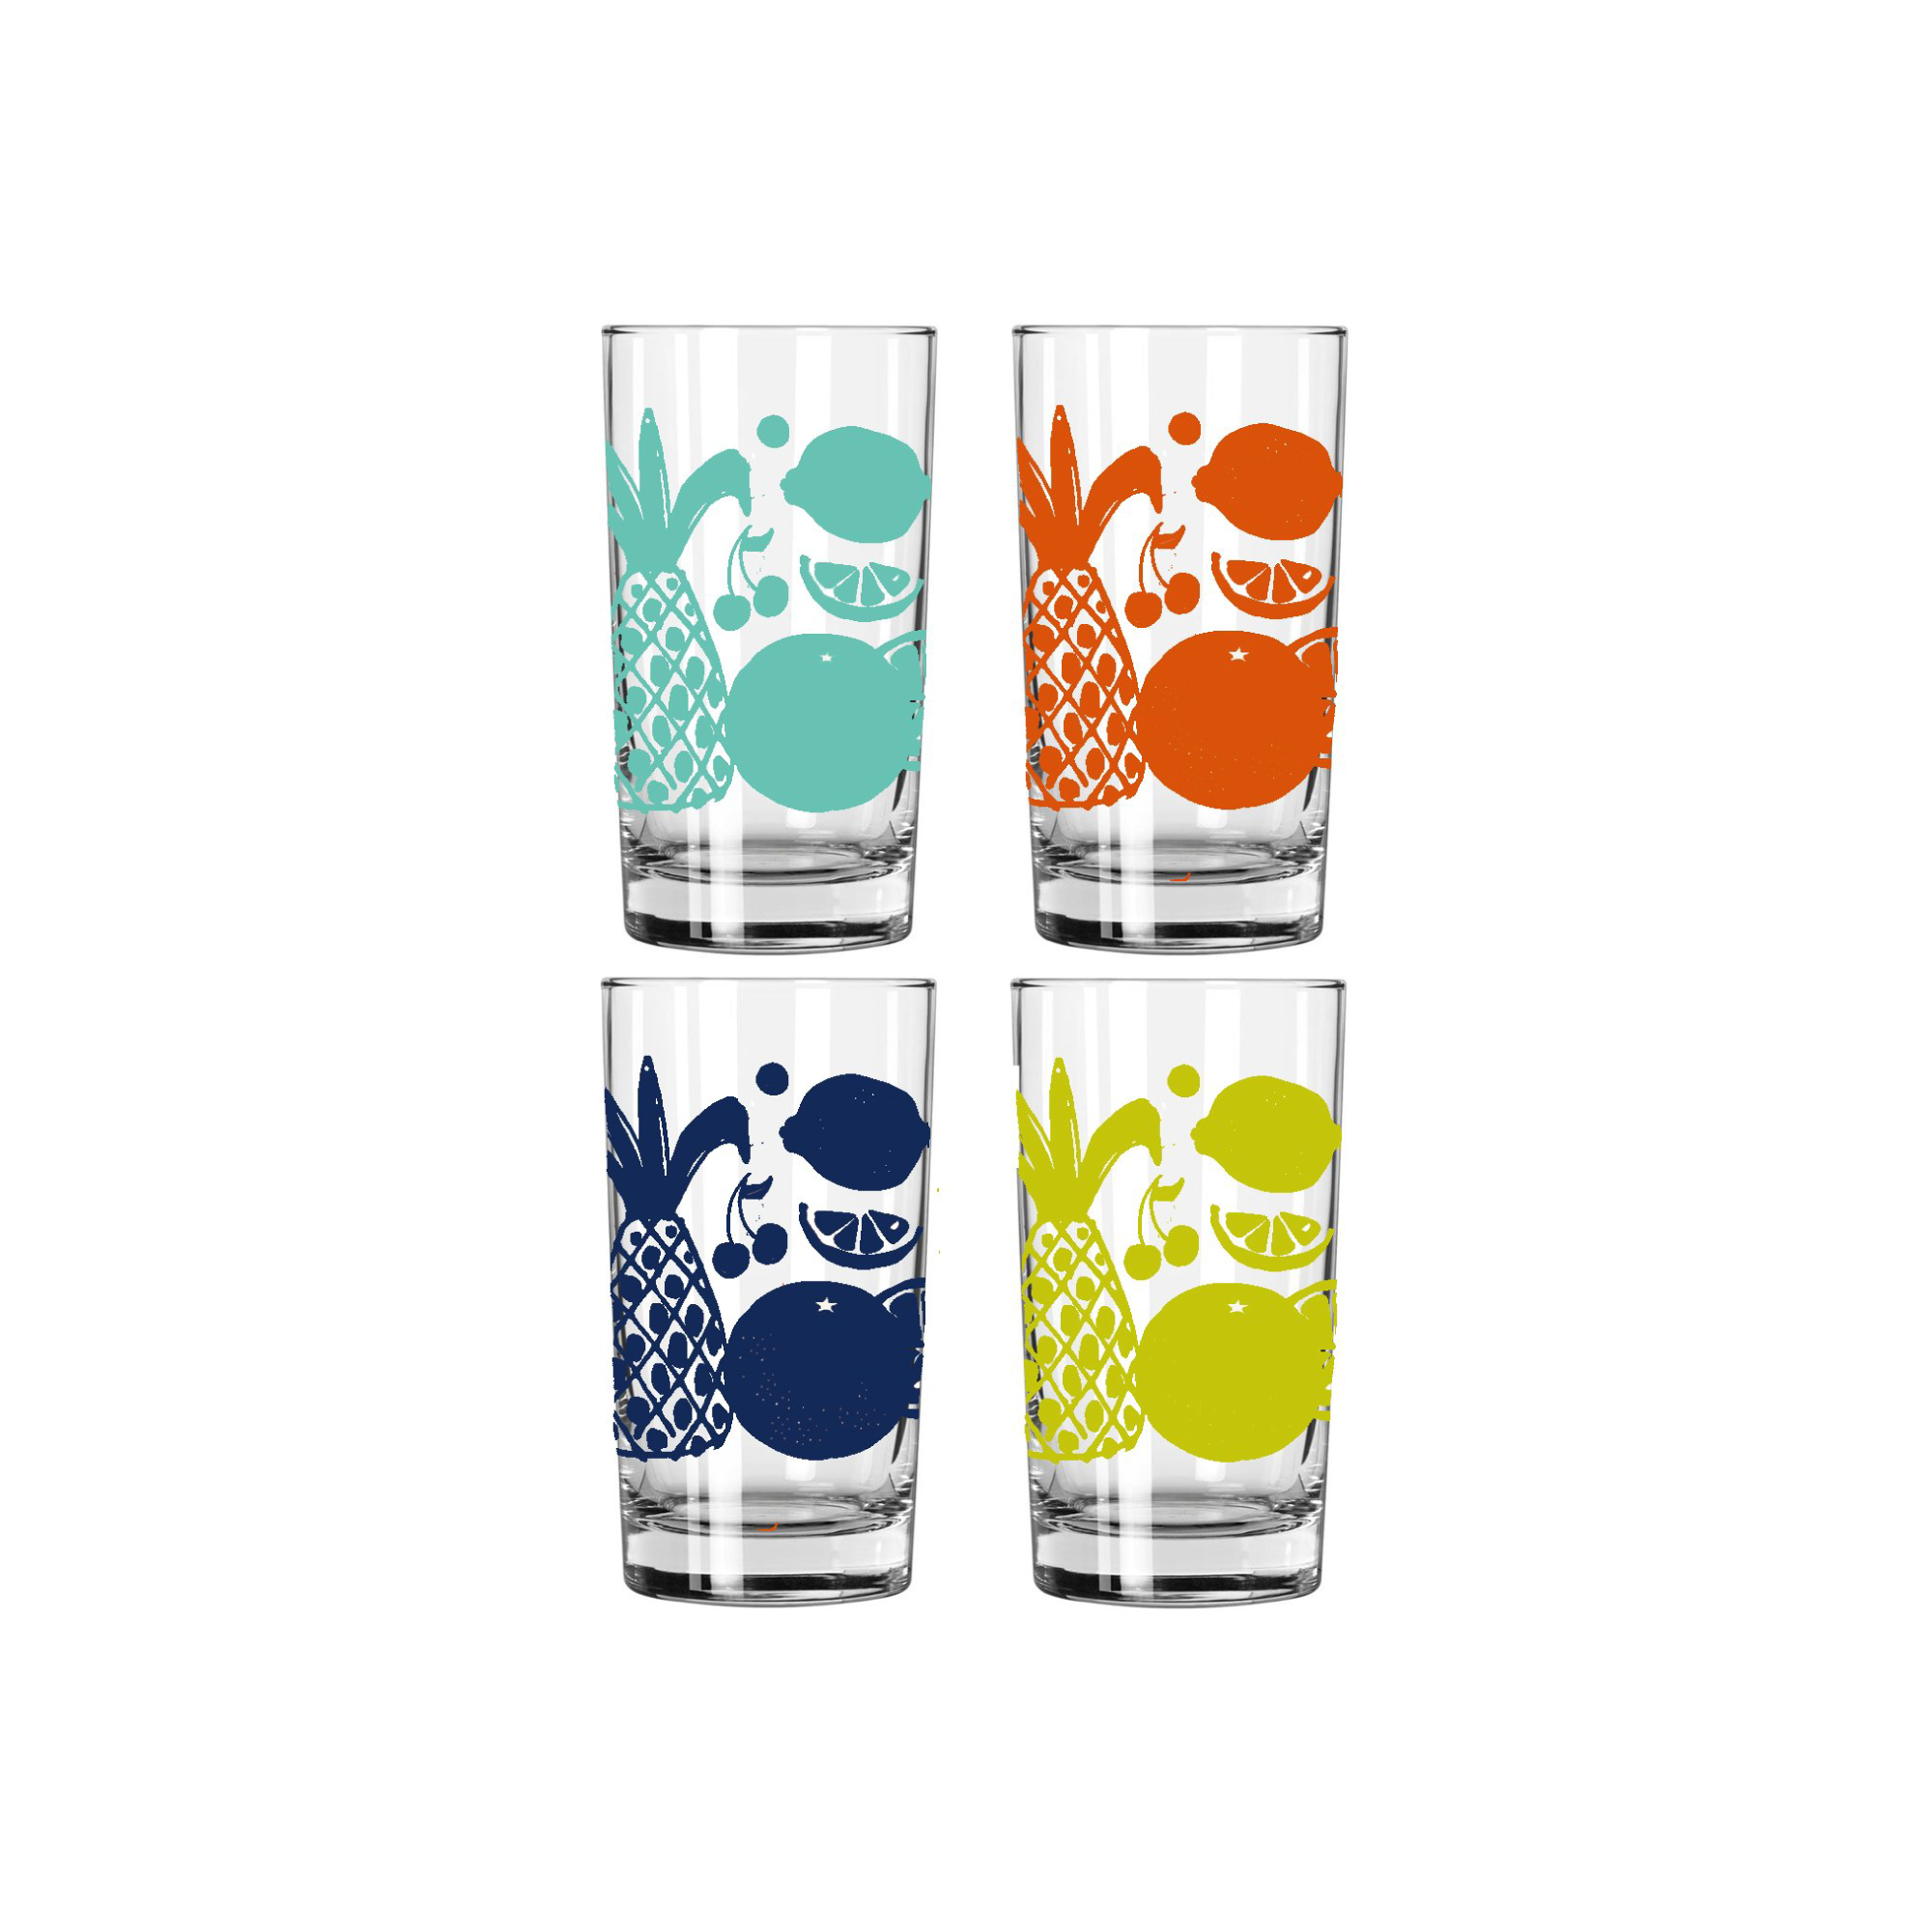 FRUIT JUICE GLASS SET